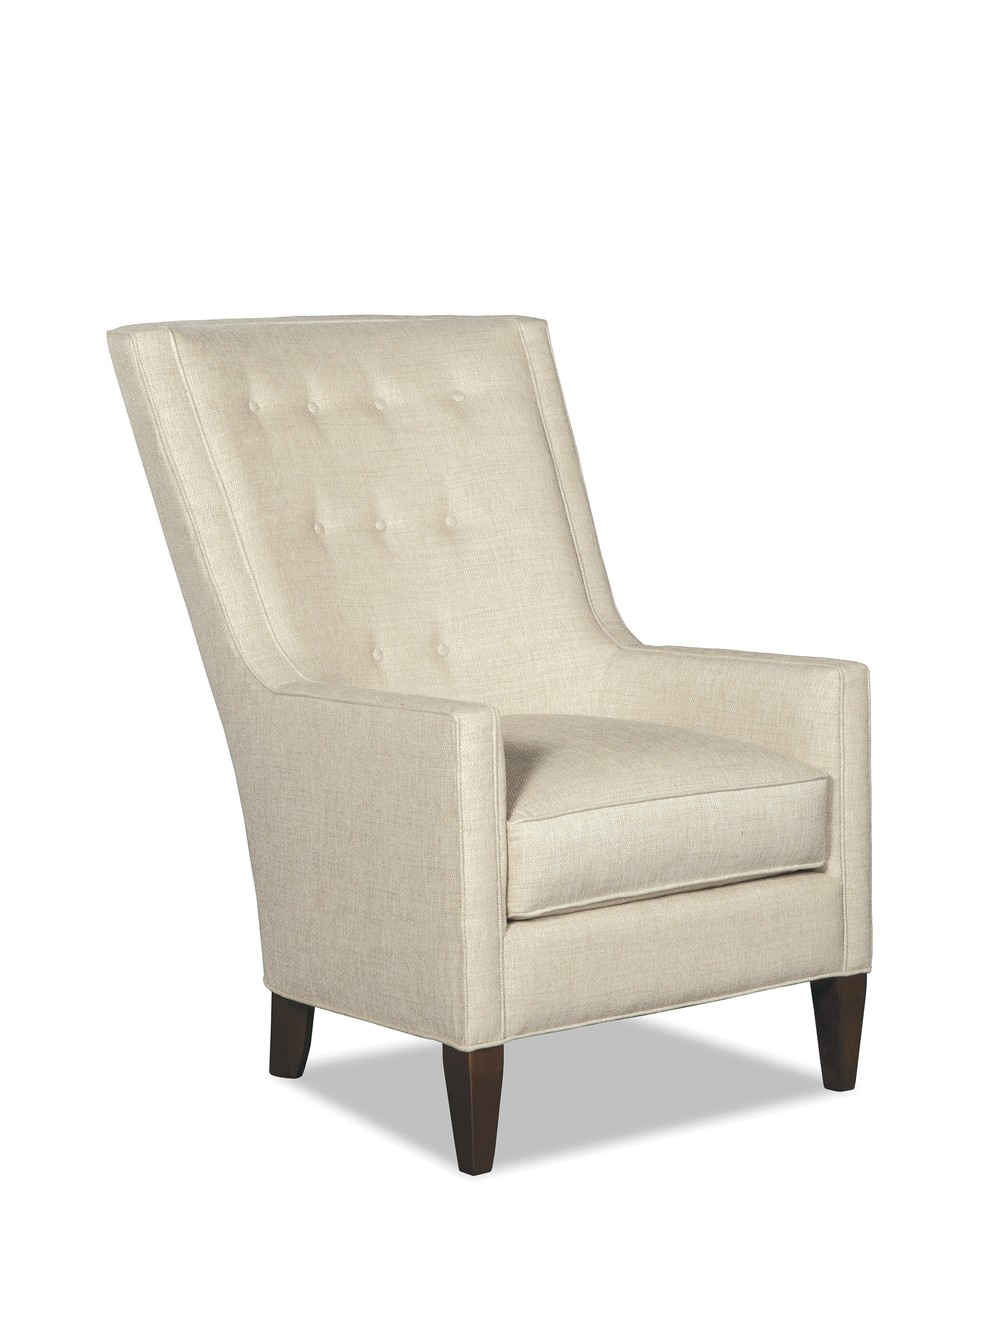 CRAFTMASTER FURNITURE - Chair